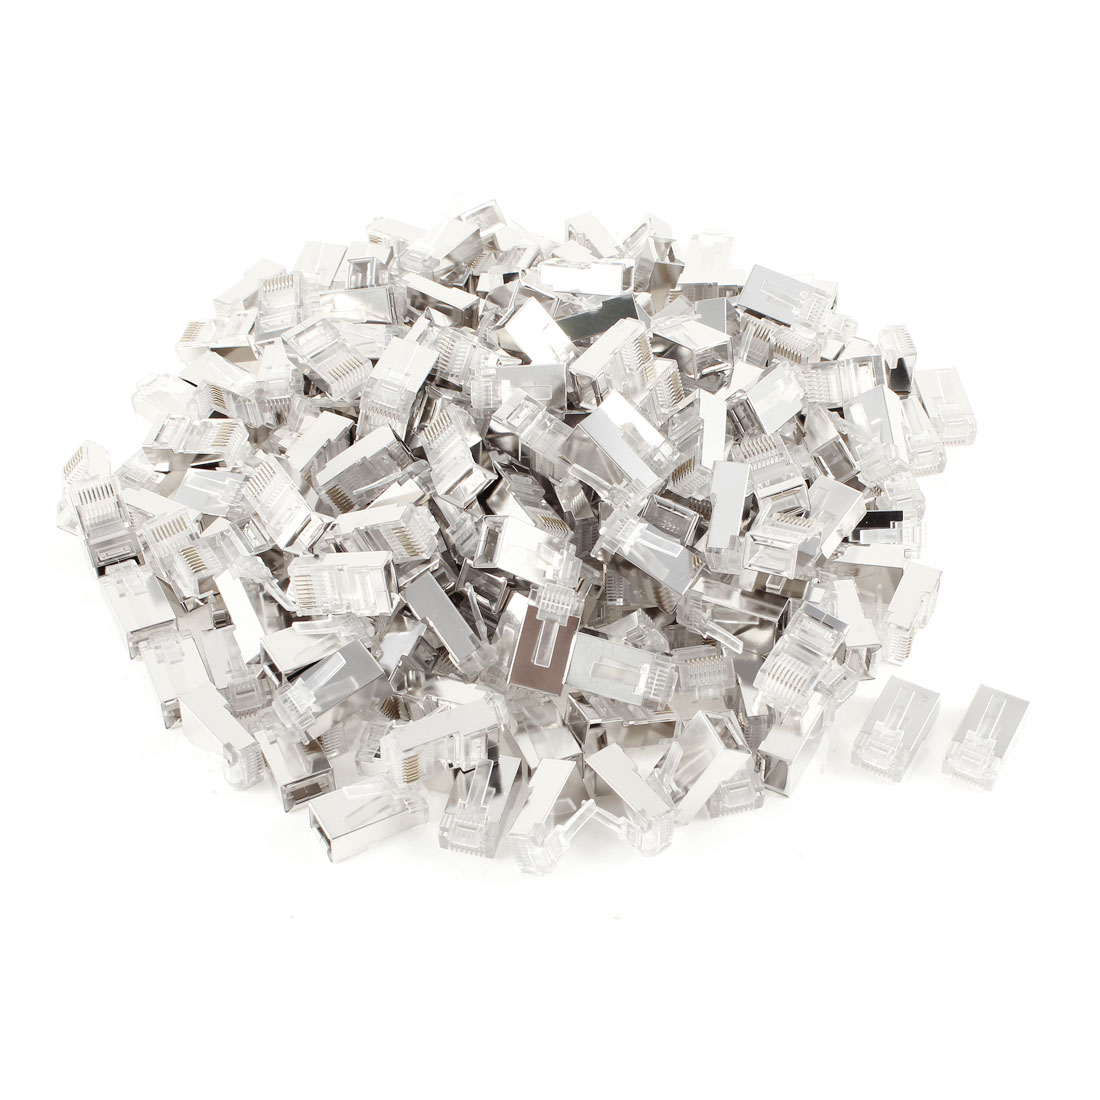 200 Pcs Silver Tone Shielded RJ45 8P8C Network LAN CAT5E CAT6 Modular Connector